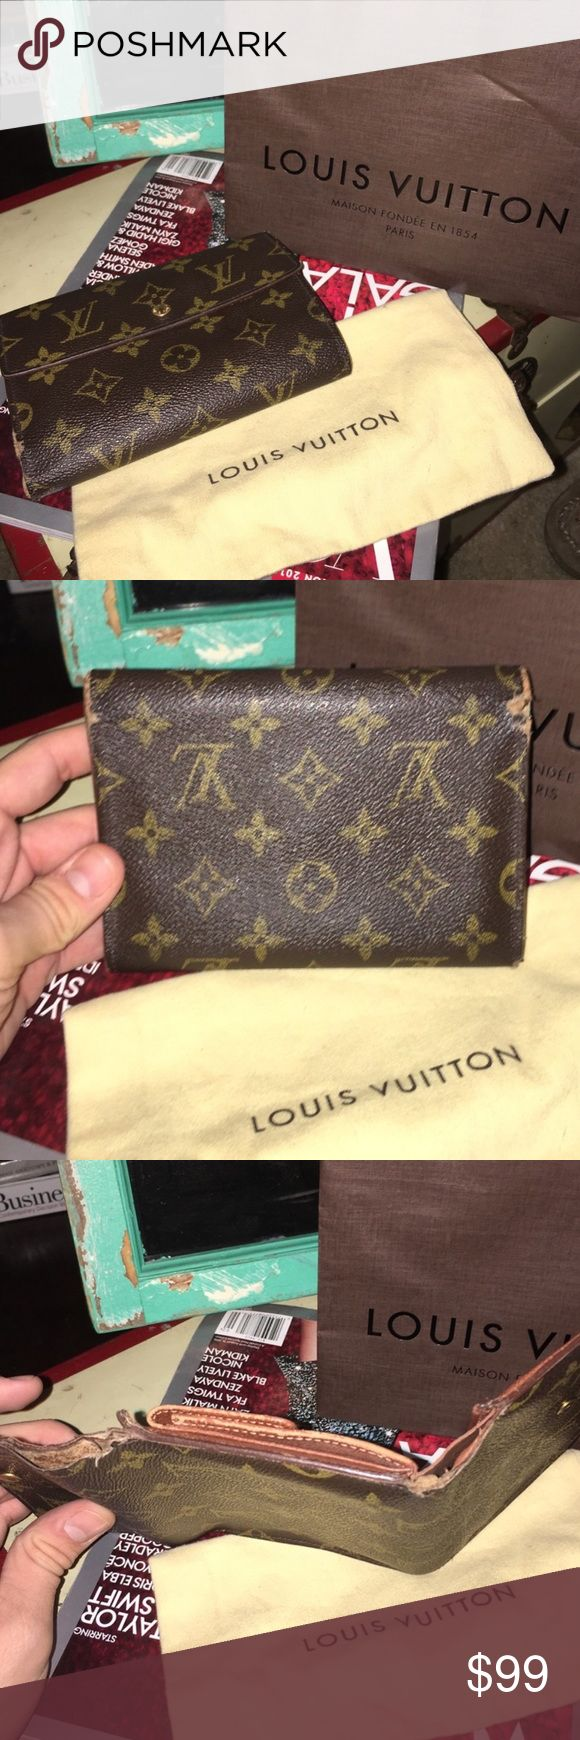 Porte tressor wallet Authentic. Worn but has plenty of life left. Stitching is coming apart on sides. Still a gorgeous traditional Louis Vuitton wallet that needs a new home. Wallet only Louis Vuitton Accessories